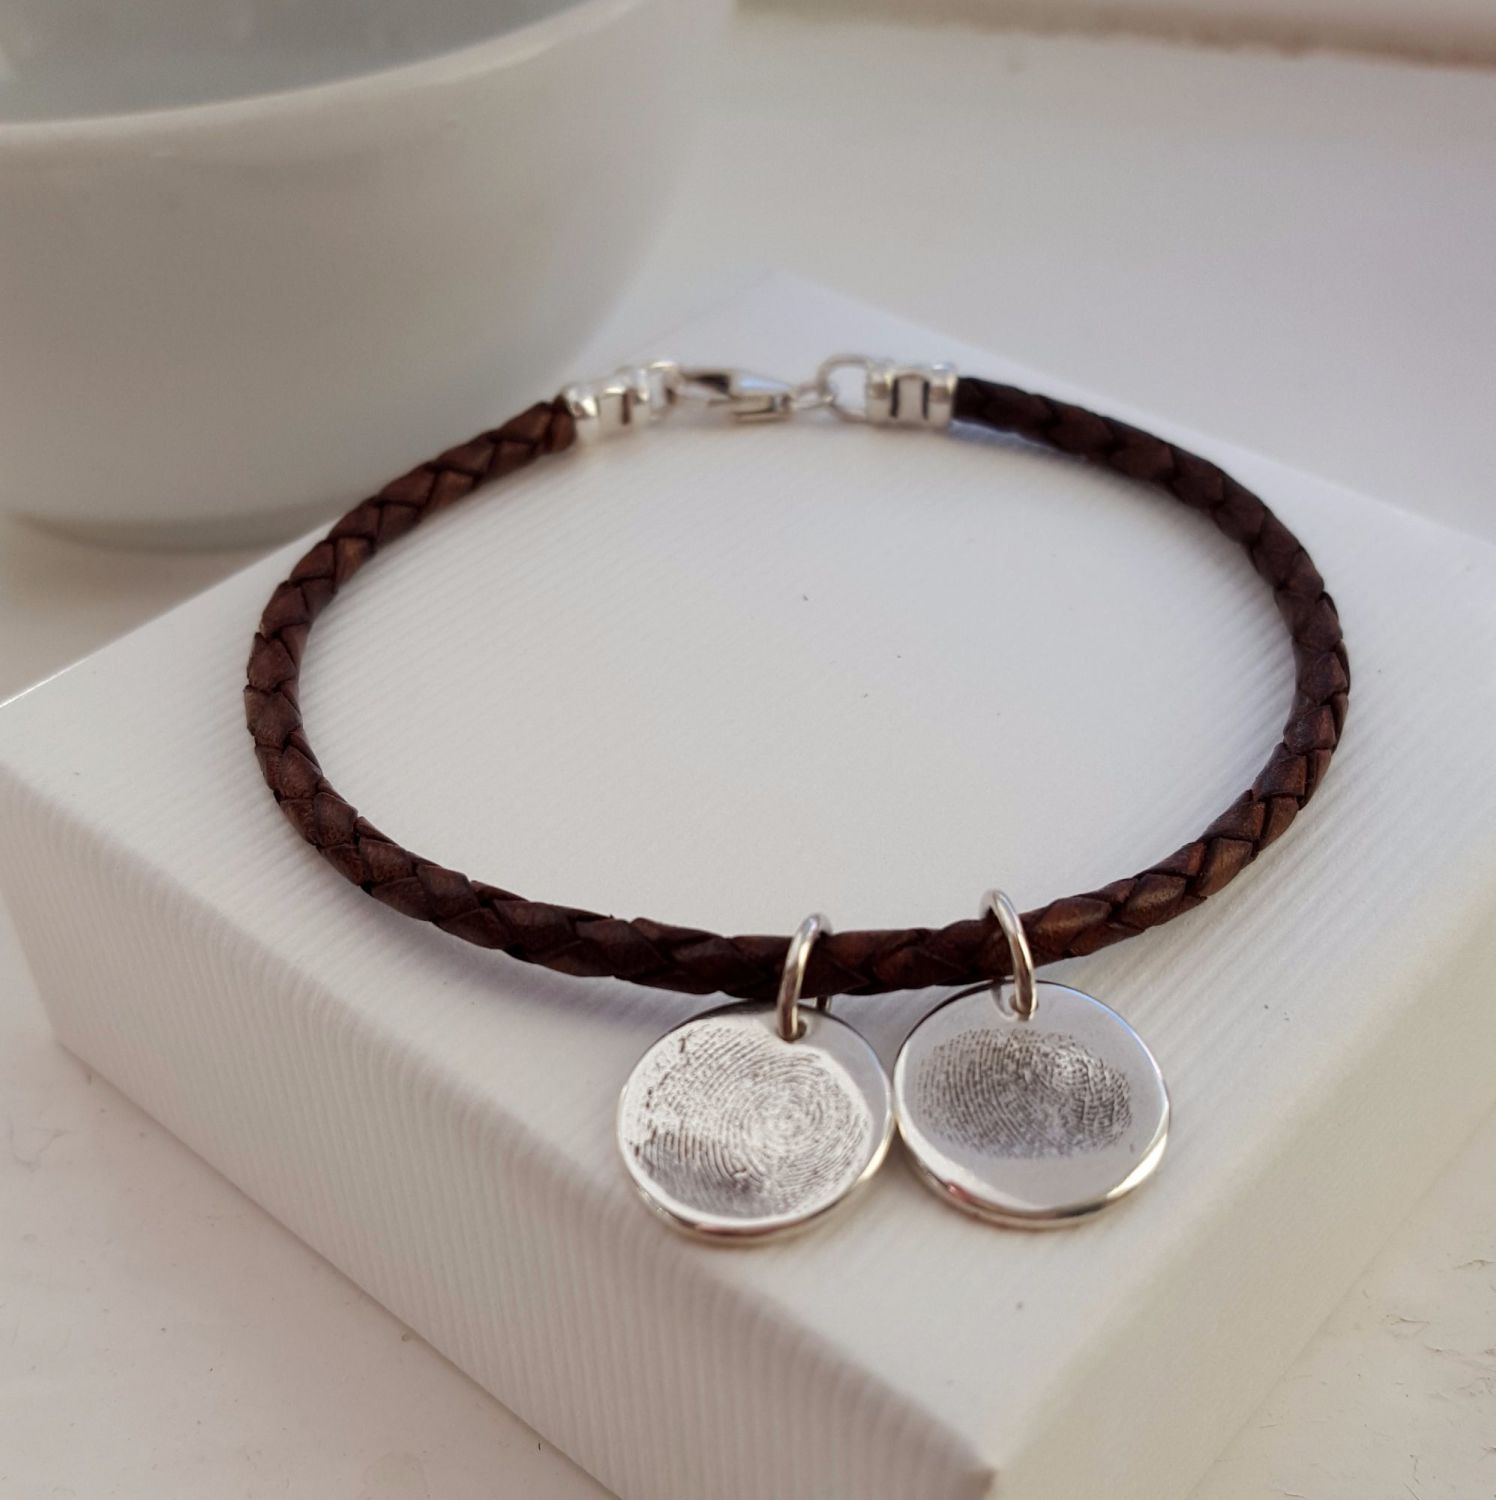 Leather Bracelet With Charms: Braided Leather Bracelet With Silver Fingerprint Charm